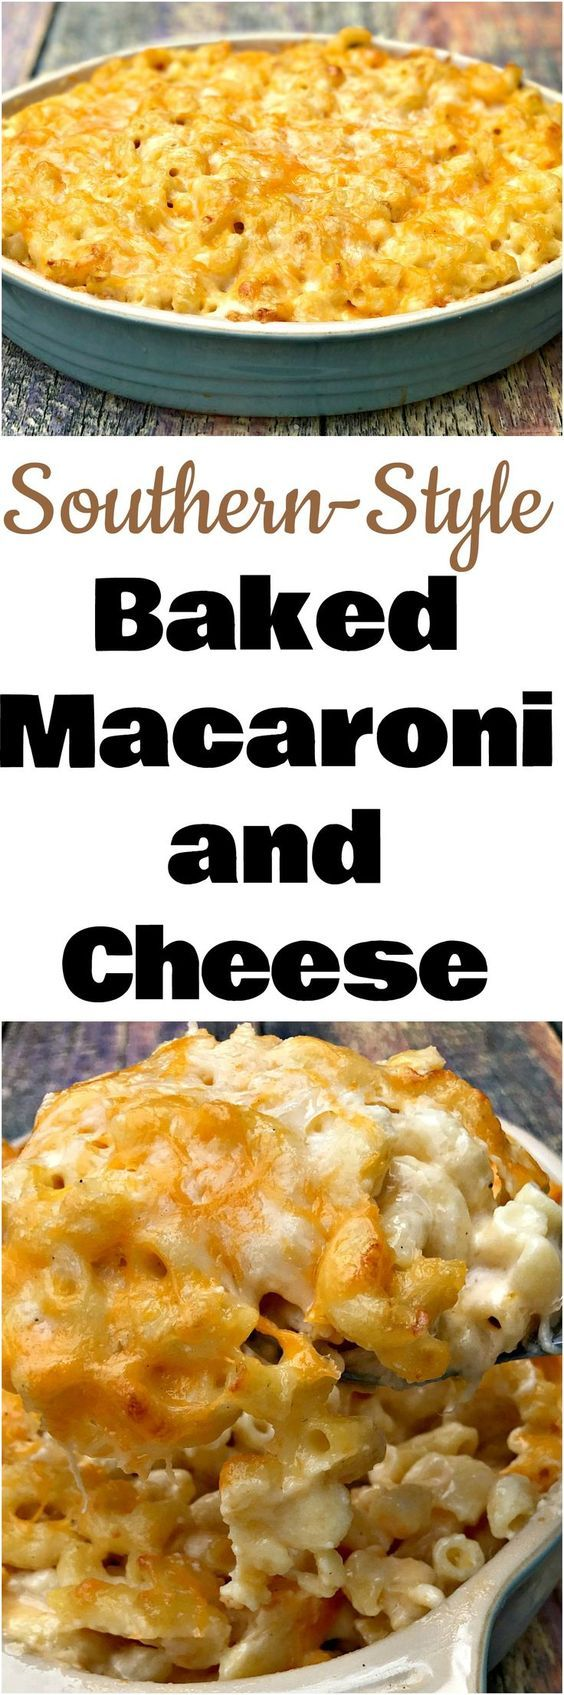 Southern style baked macaroni and cheese is a homemade soul food southern style baked macaroni and cheese is a homemade soul food recipe with 5 creamy types of cheese perfect for thanksgiving christmas and ho forumfinder Choice Image